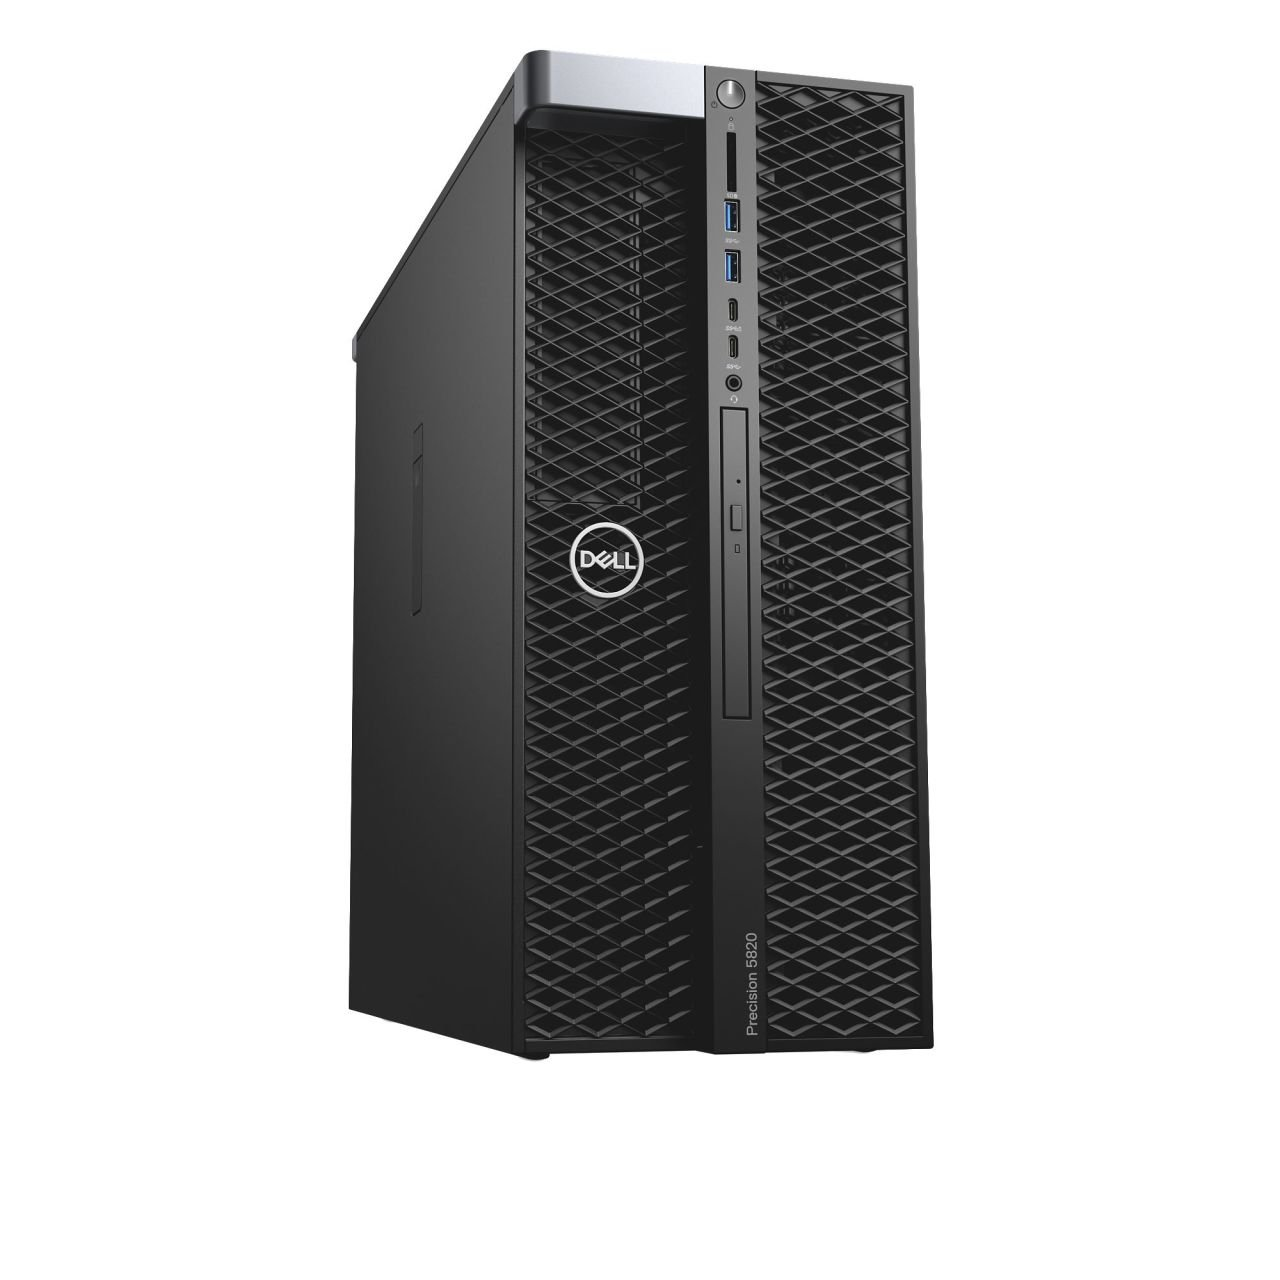 DELL PRECISION T5820_W-2123 Xeon W-2123 3.6GHz 16GB (2x8GB) M.2 256GB SSD 950W WIN10 PRO WORKSTATION